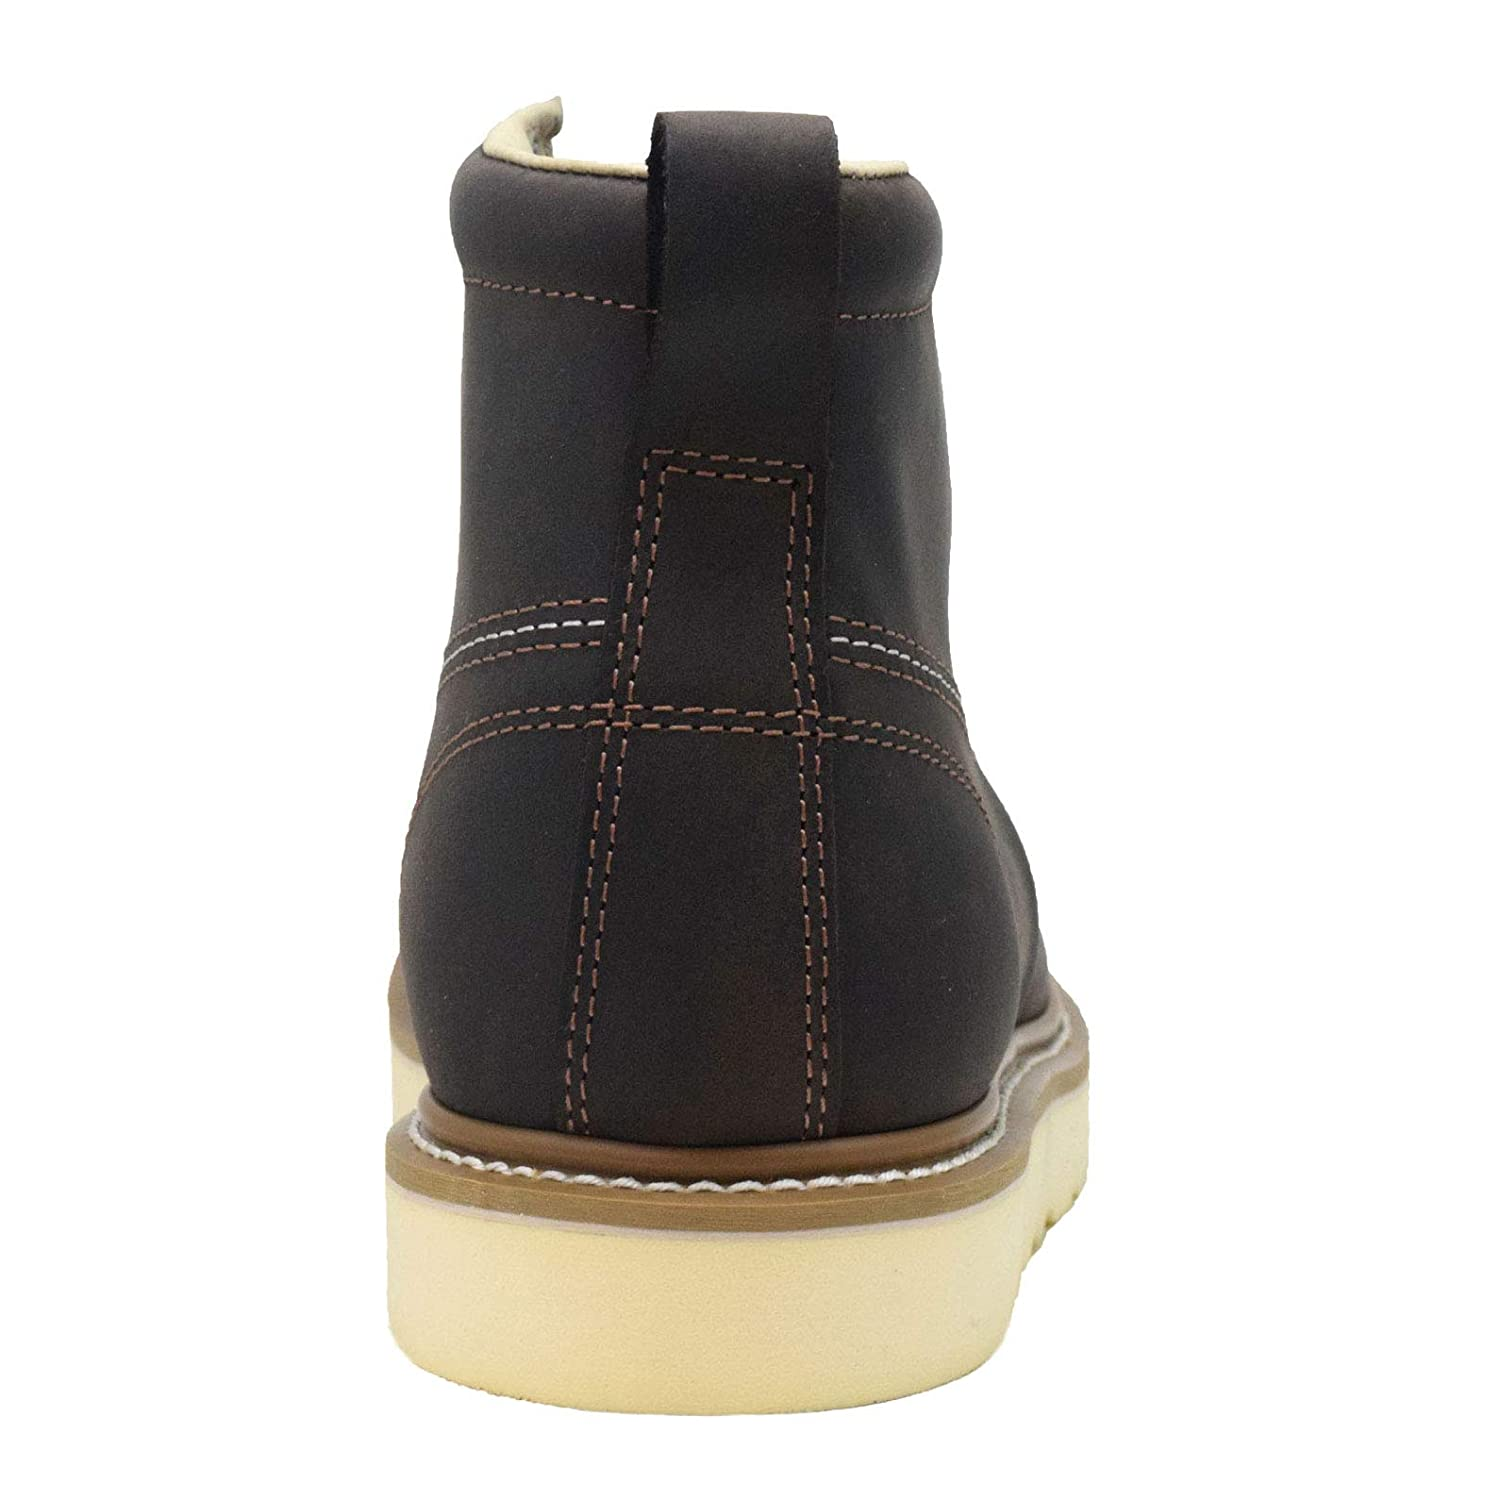 Lightweight Comfortable Outsole Golden Fox Work Boots Mens 6 Plain Toe Wedge Boot for Construction